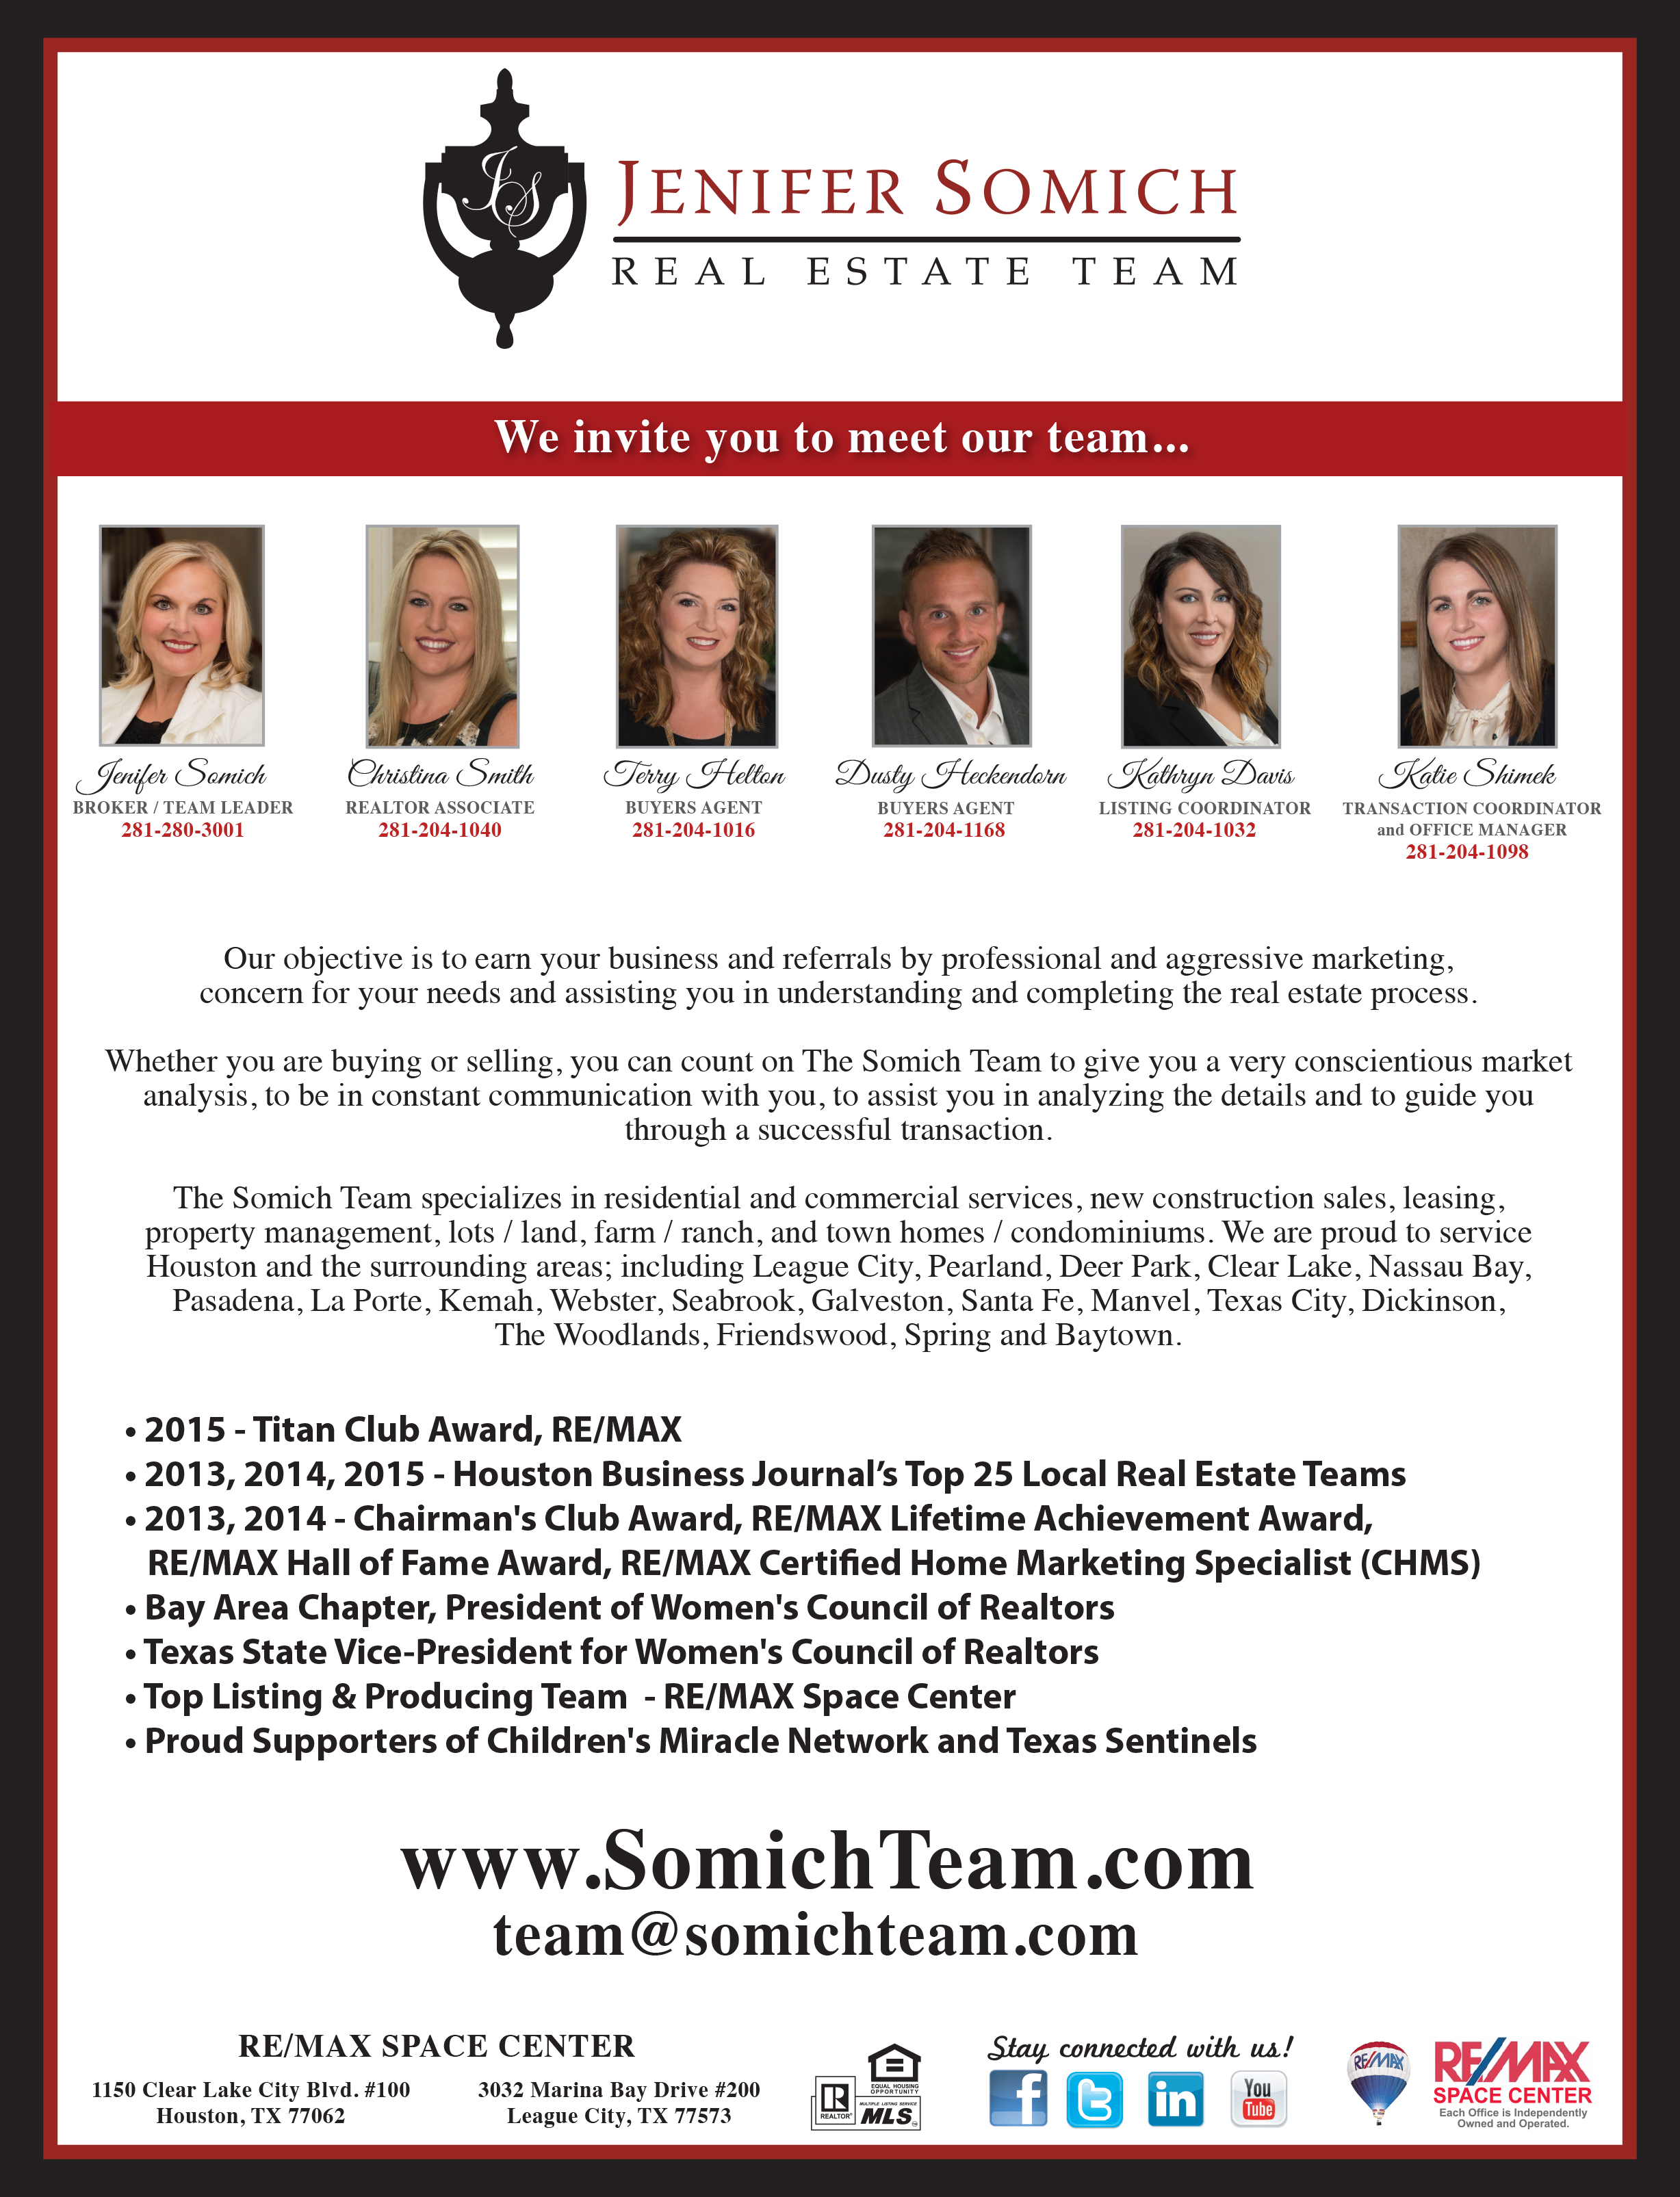 real estate agent jenifer somich jenifer somich real estate team team bio